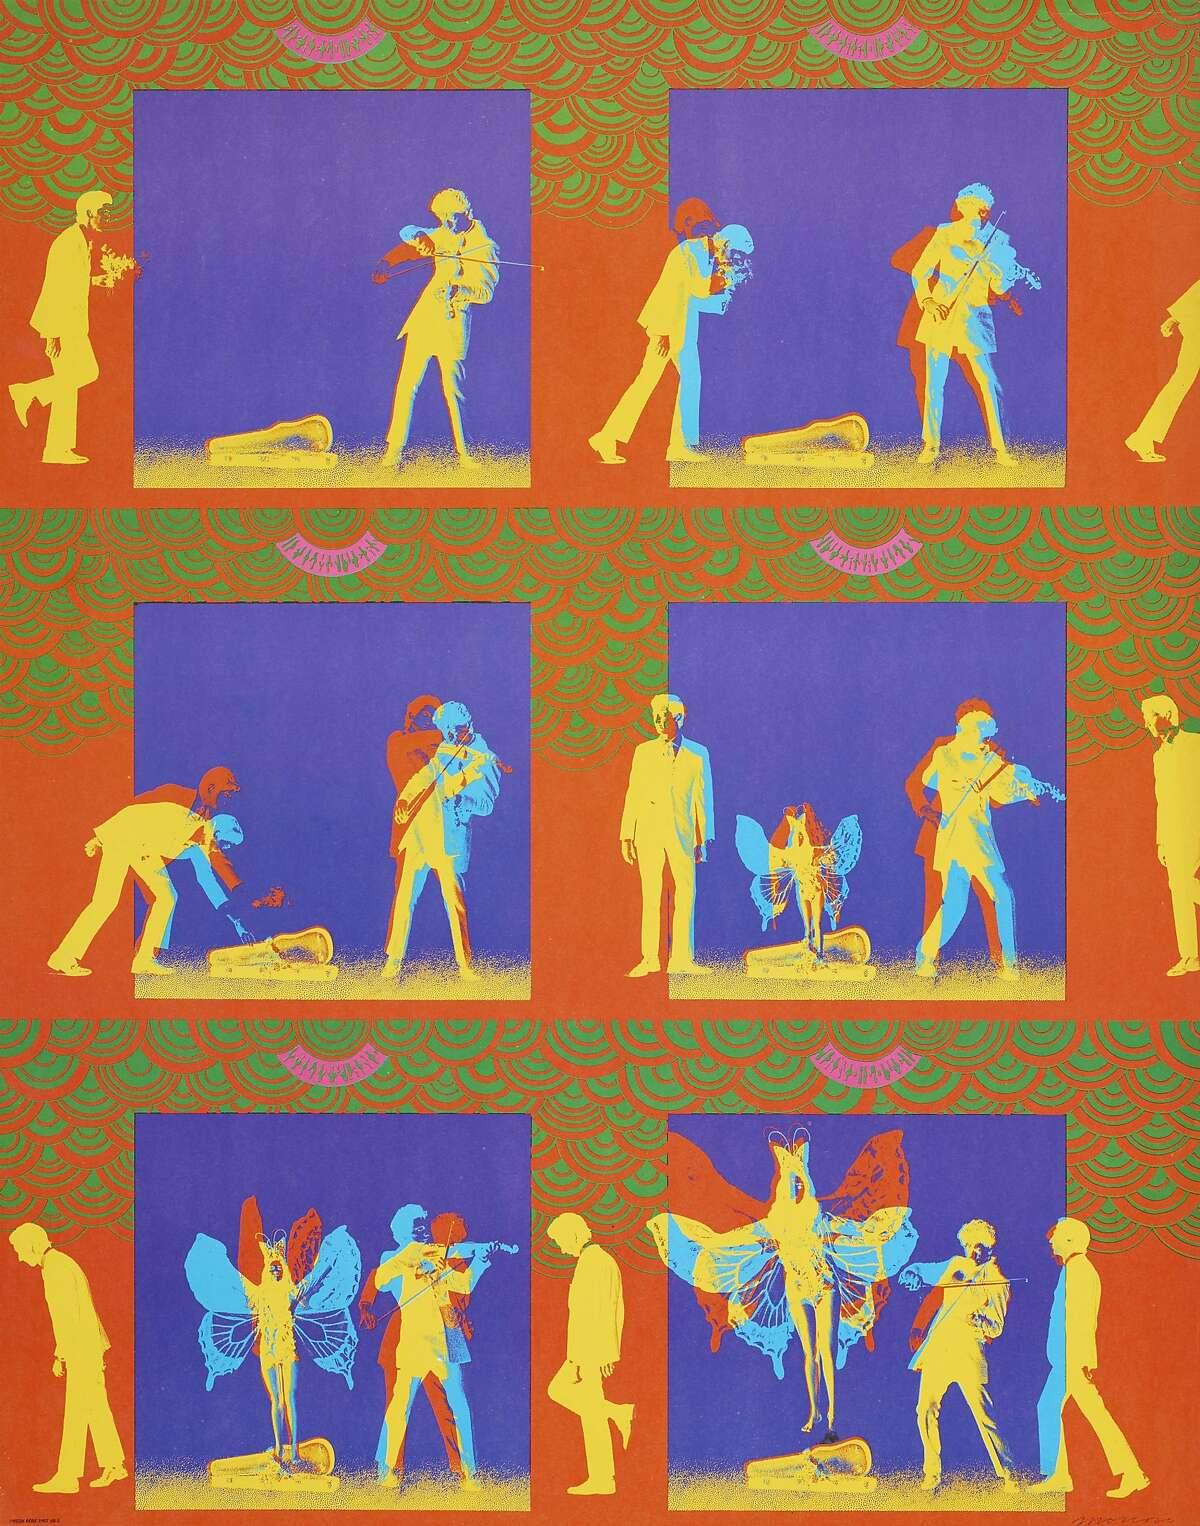 """Victor Moscoso, """"Pablo Ferro advertisement for film"""" (1967). Color offset lithograph poster. � Victor Moscoso On view at de Young Museum, Summer of Love: Art, Fashion, and Rock & Roll, April 8 - Aug. 20, 2017 Image Courtesy of the Fine Arts Museums of San Francisco"""